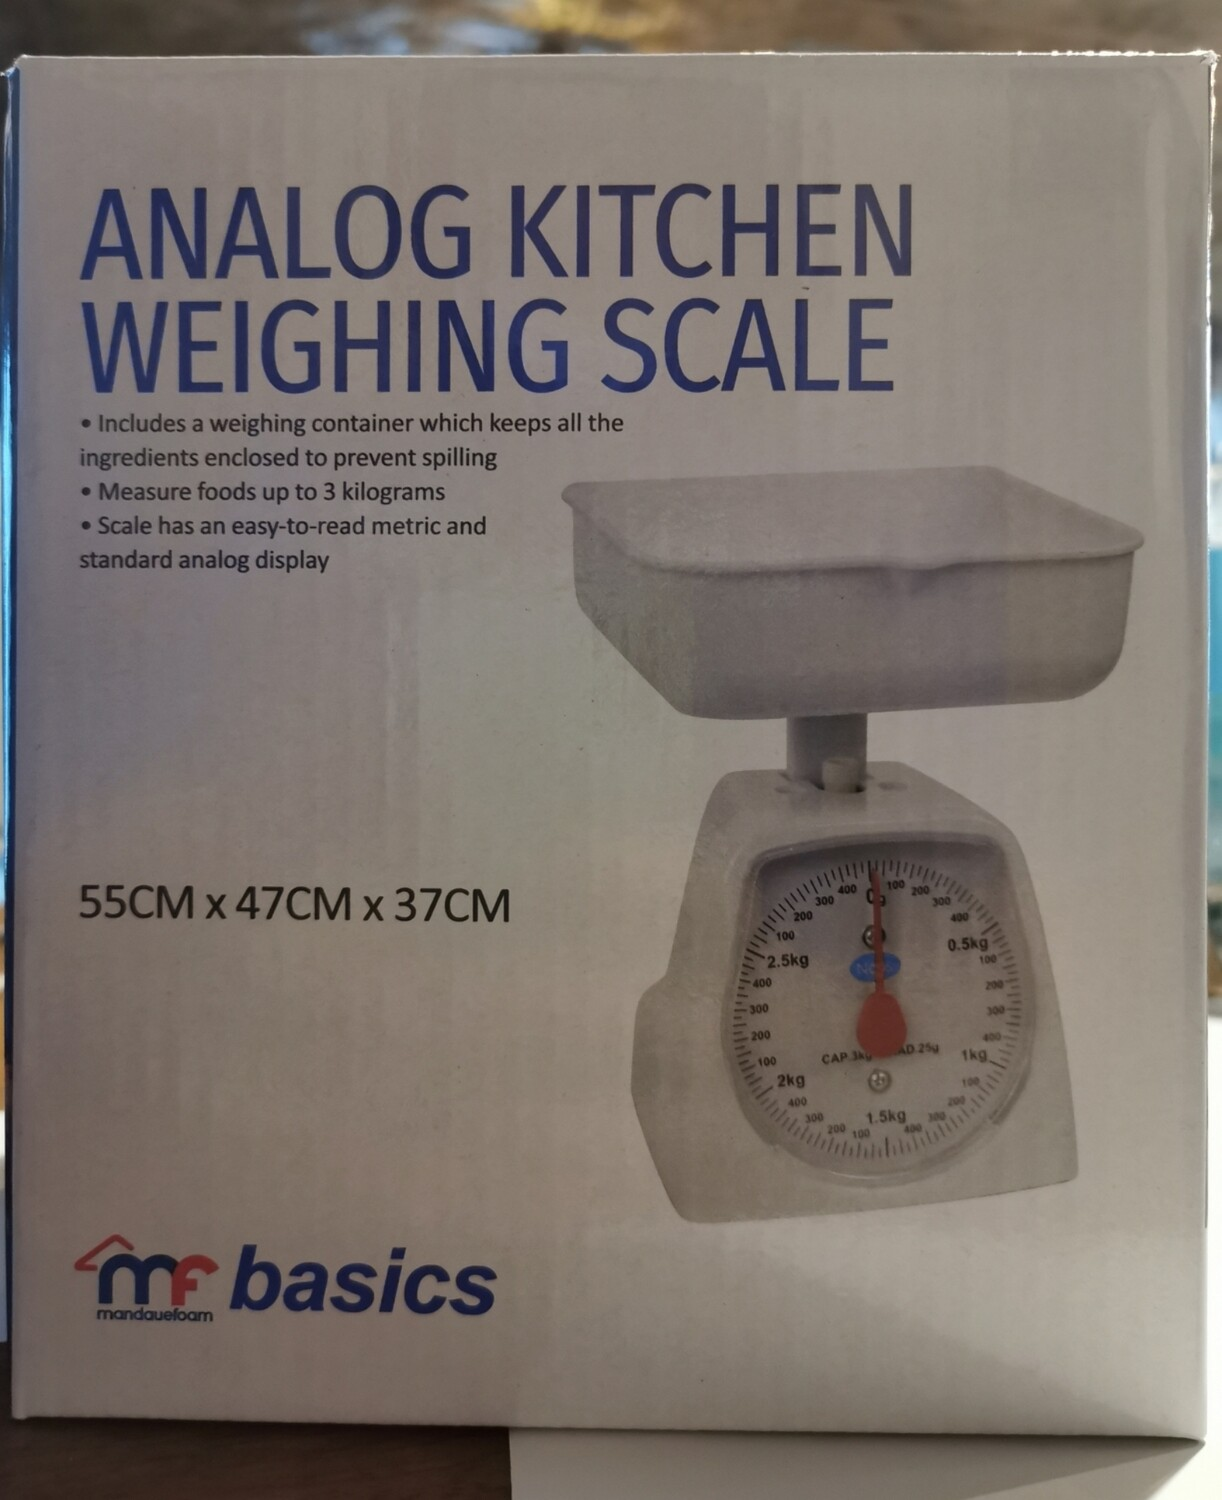 Analog Kitchen Weighing Scale